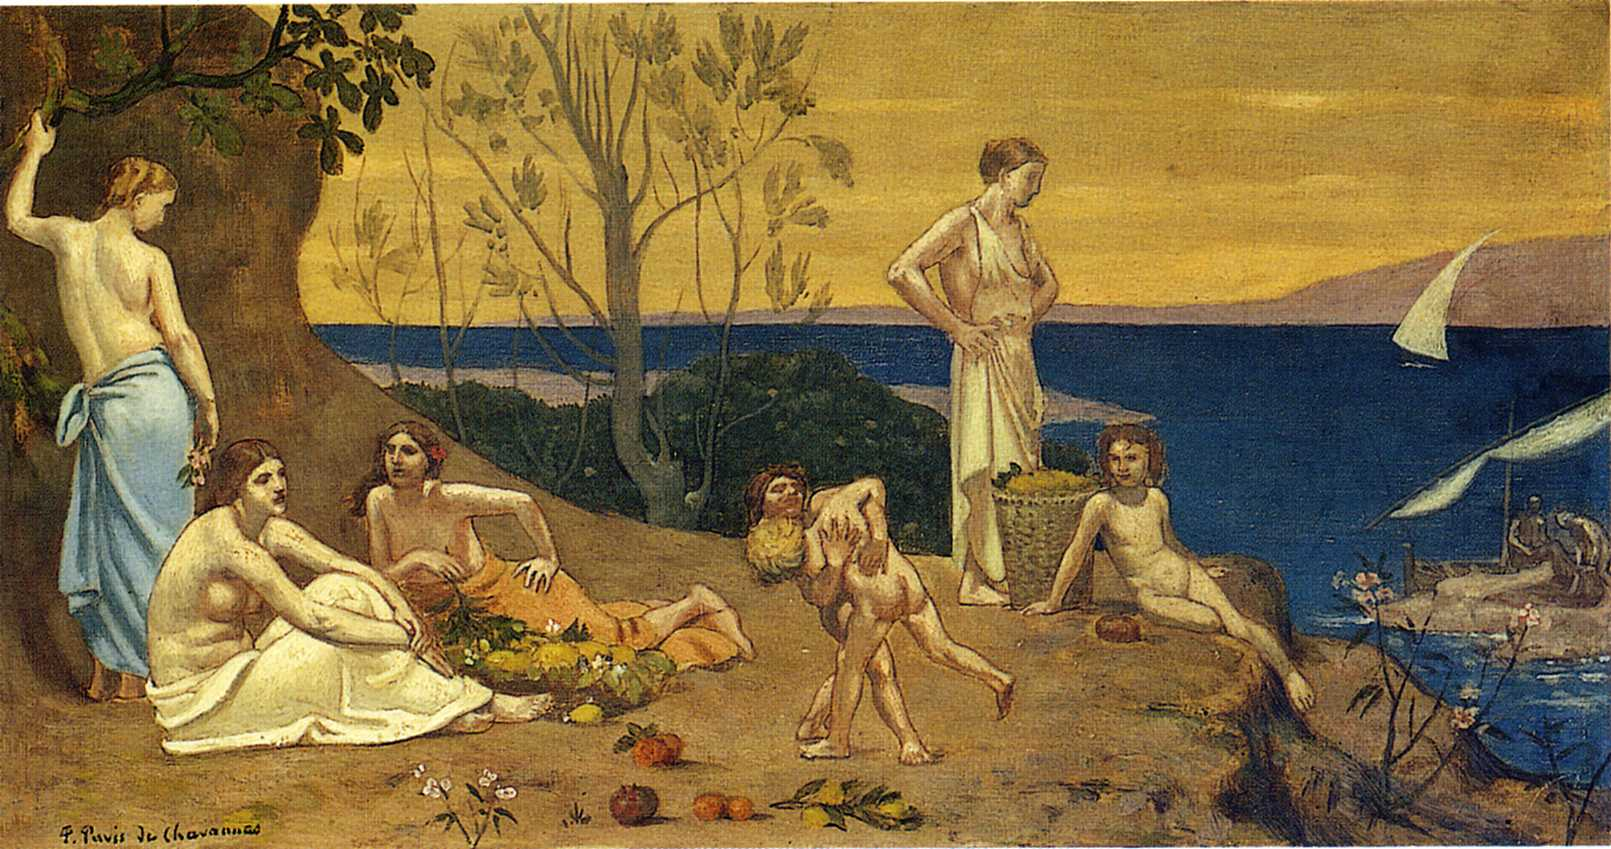 themes in pierre puvis de chavannes painting the poor fisherman